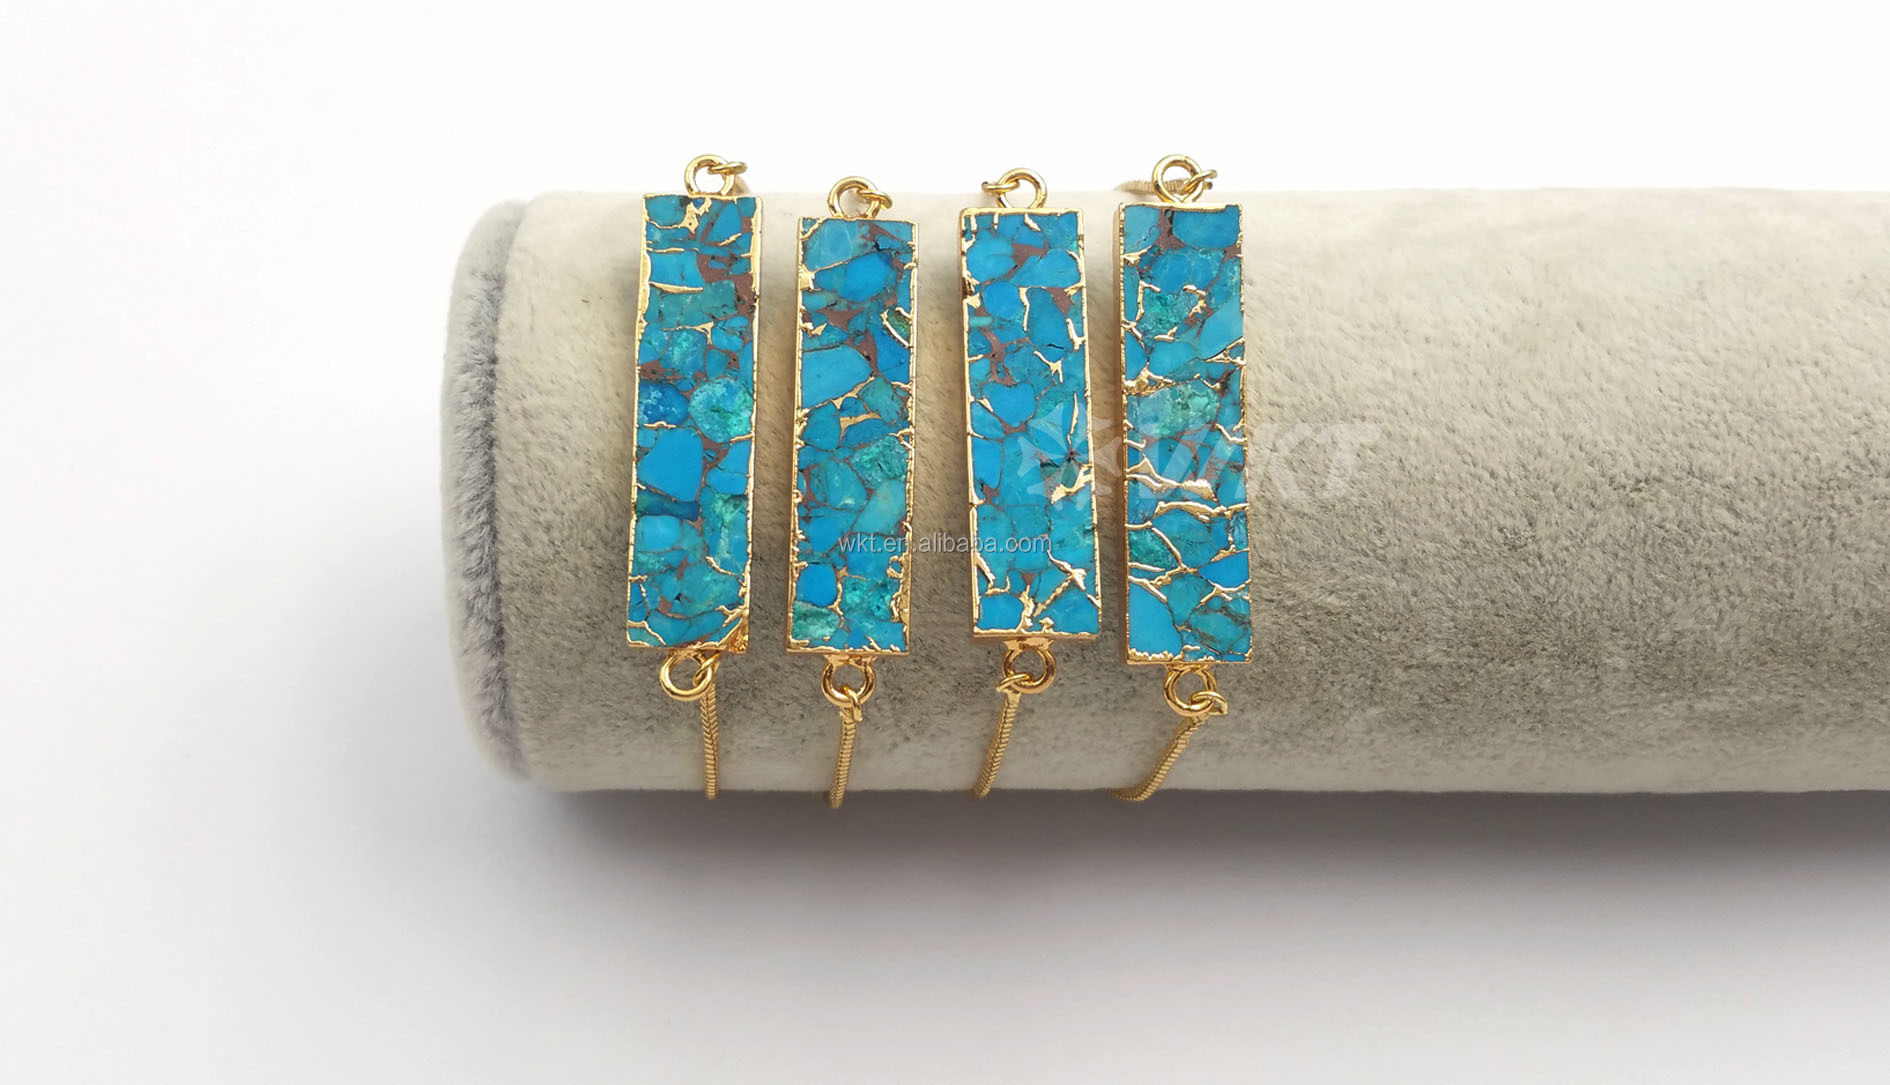 WT-B473 Women Gold Bracelet Jewelry Natural Blue Vein Turquoises Bracelet Rectangle Shape stones Link Adjustable Bracelet